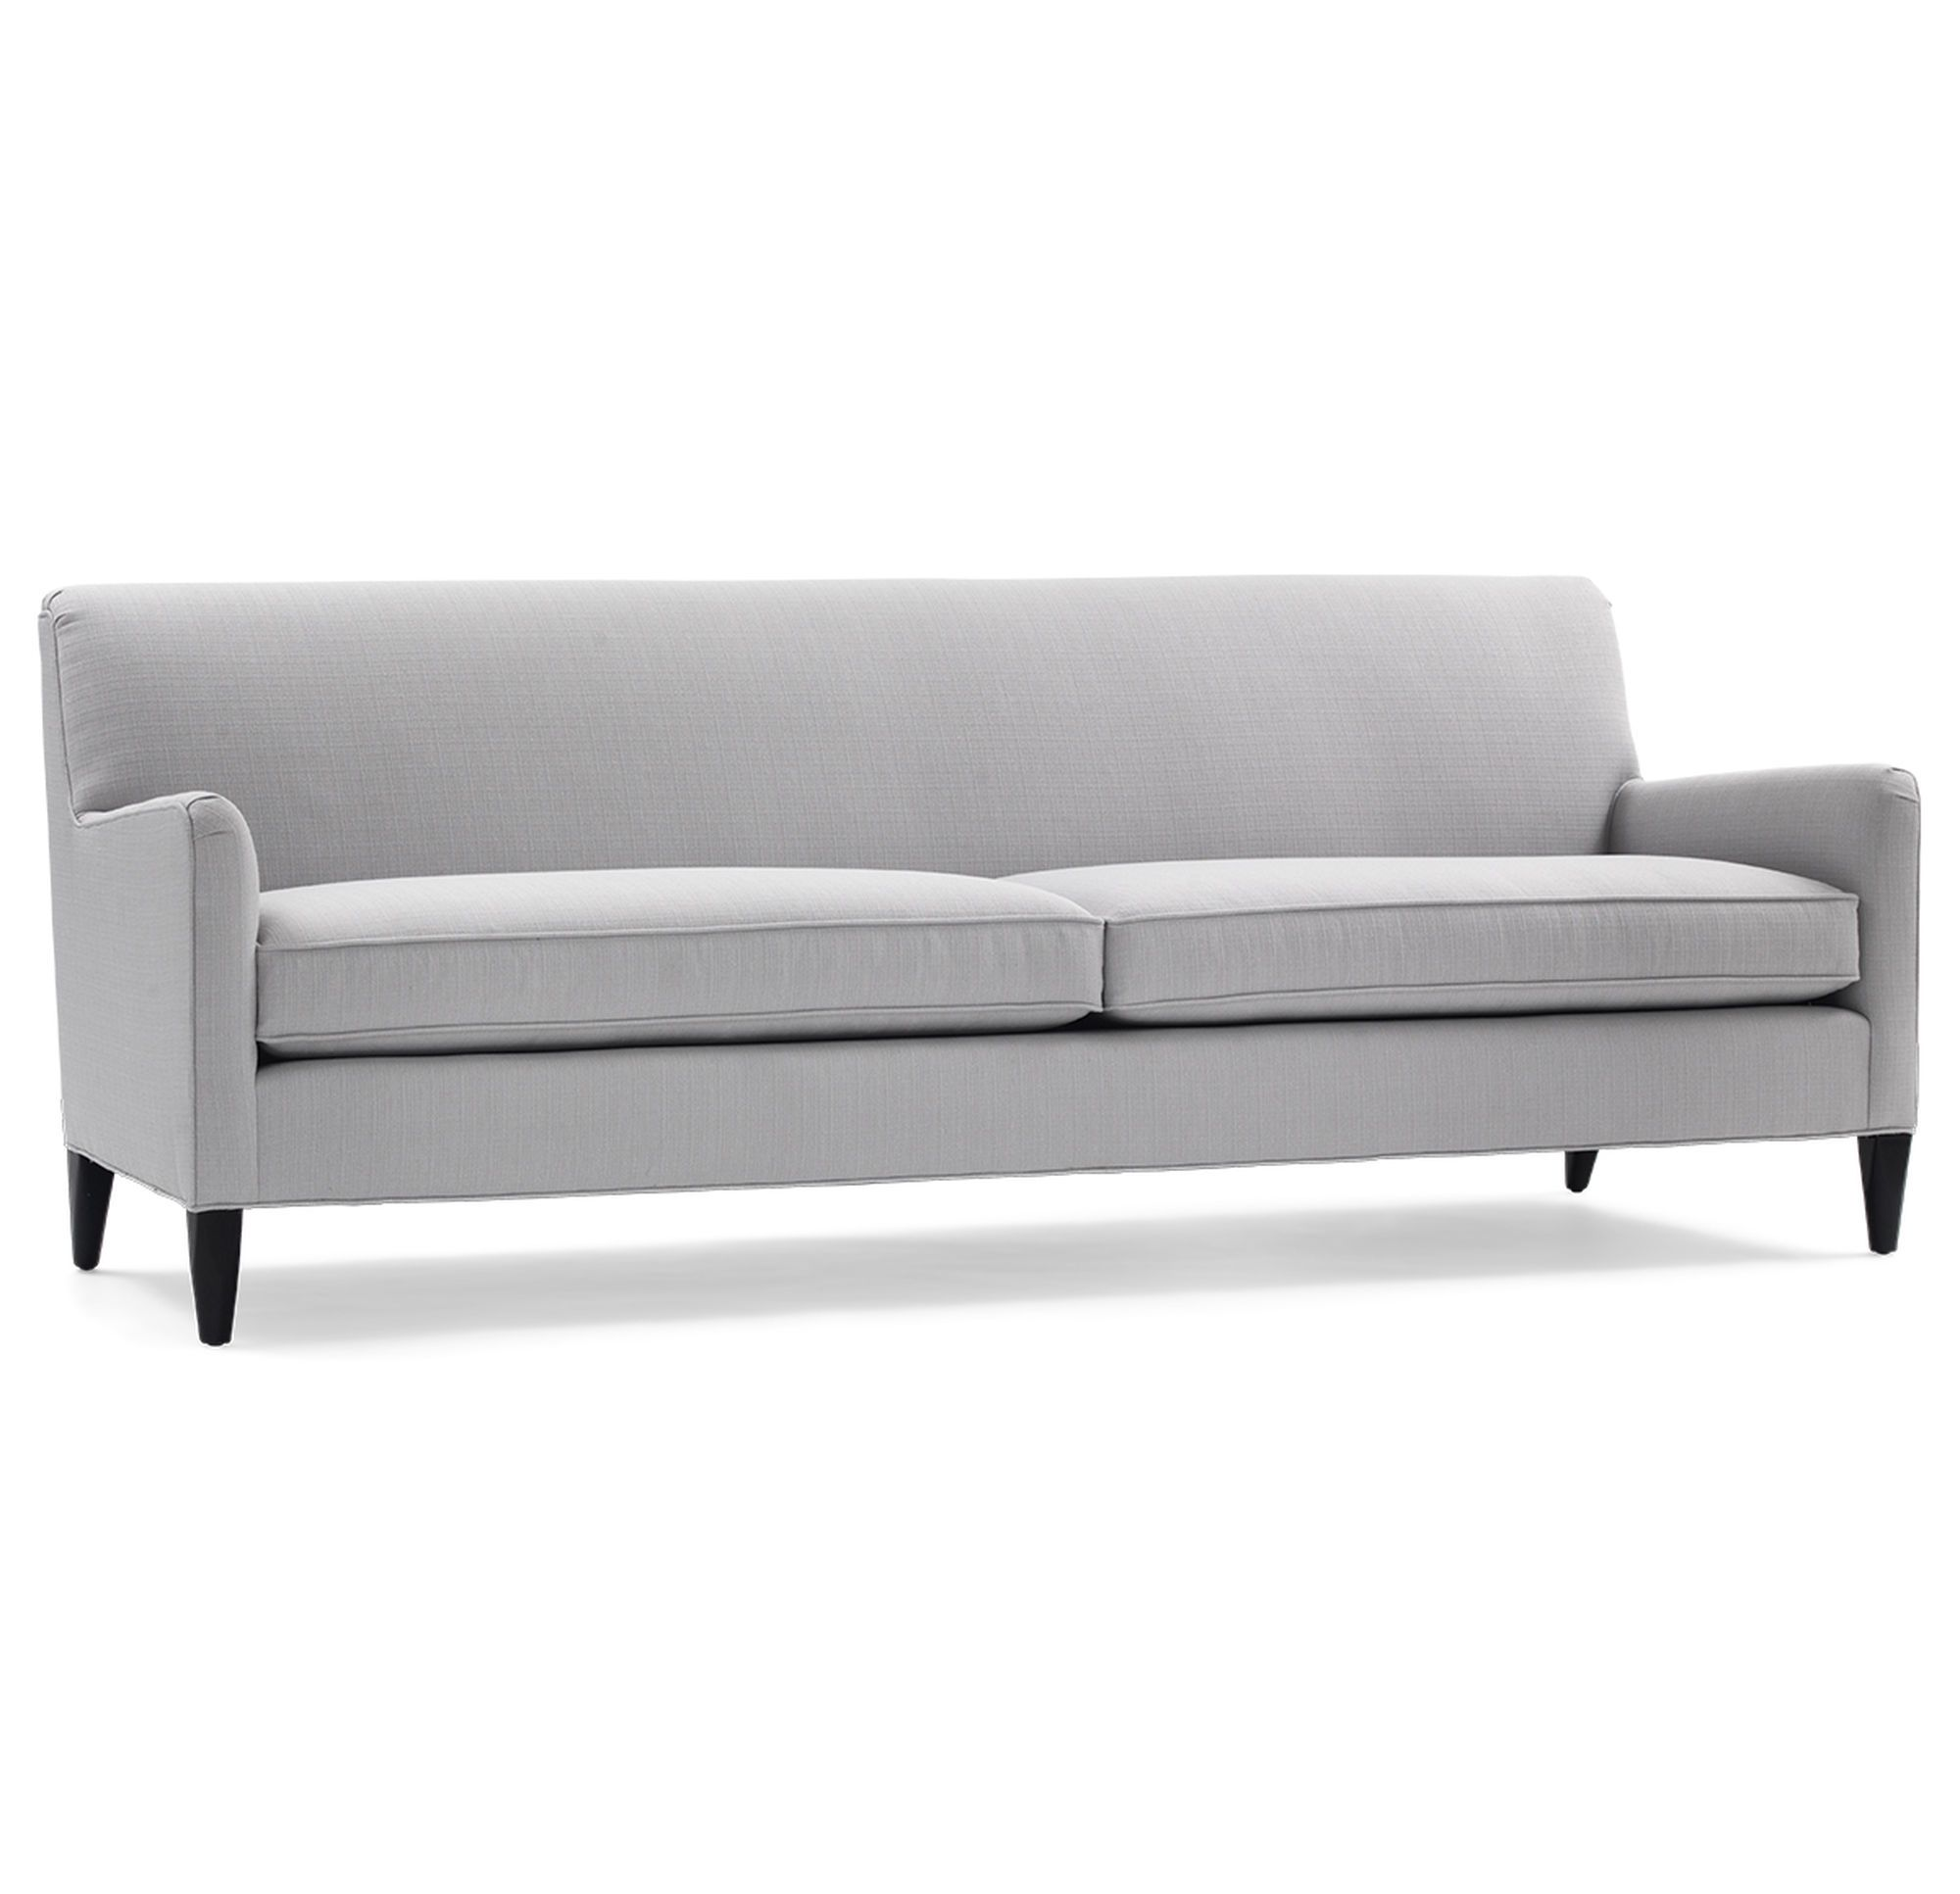 Sloane sofa keswick silver mitchell gold sectional sofa sofas sofa furniture